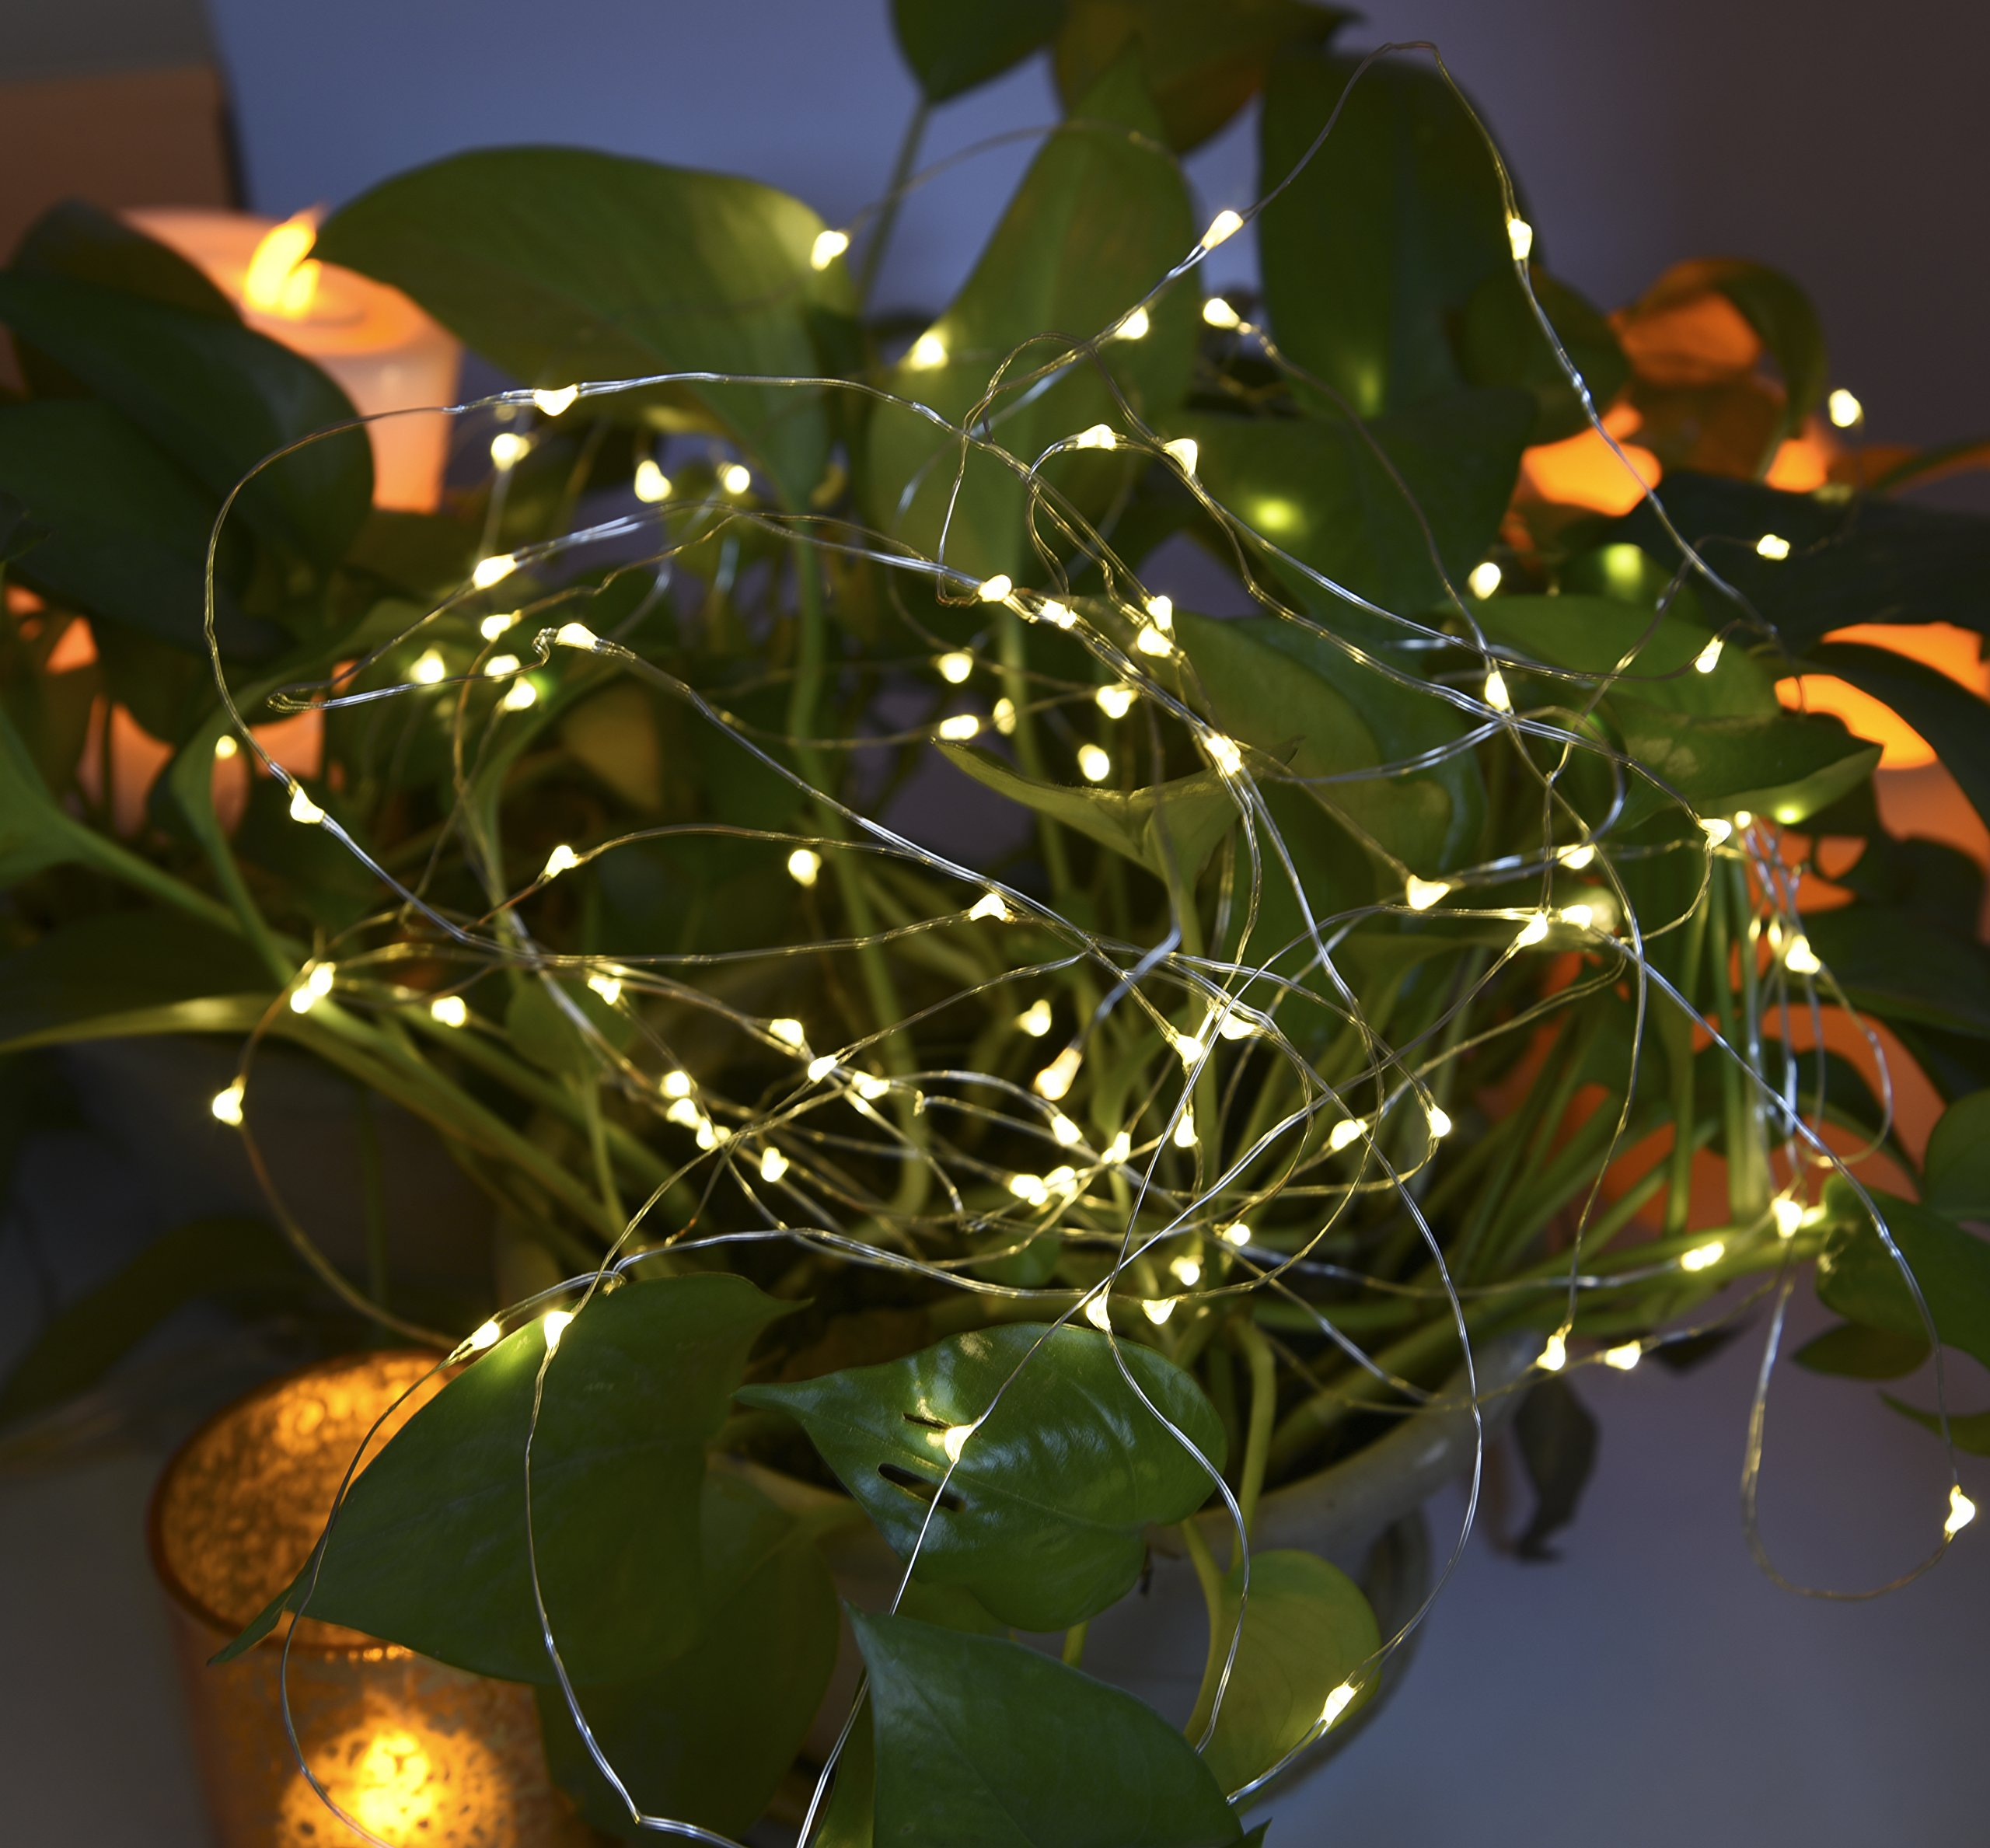 Solar String Lights,Solarmks Outdoor String Lights 100 LED Fairy Lights Waterproof Copper Wire Lights for Christmas,Patio,Lawn,Garden Decorations,Warm White,2 of Pack